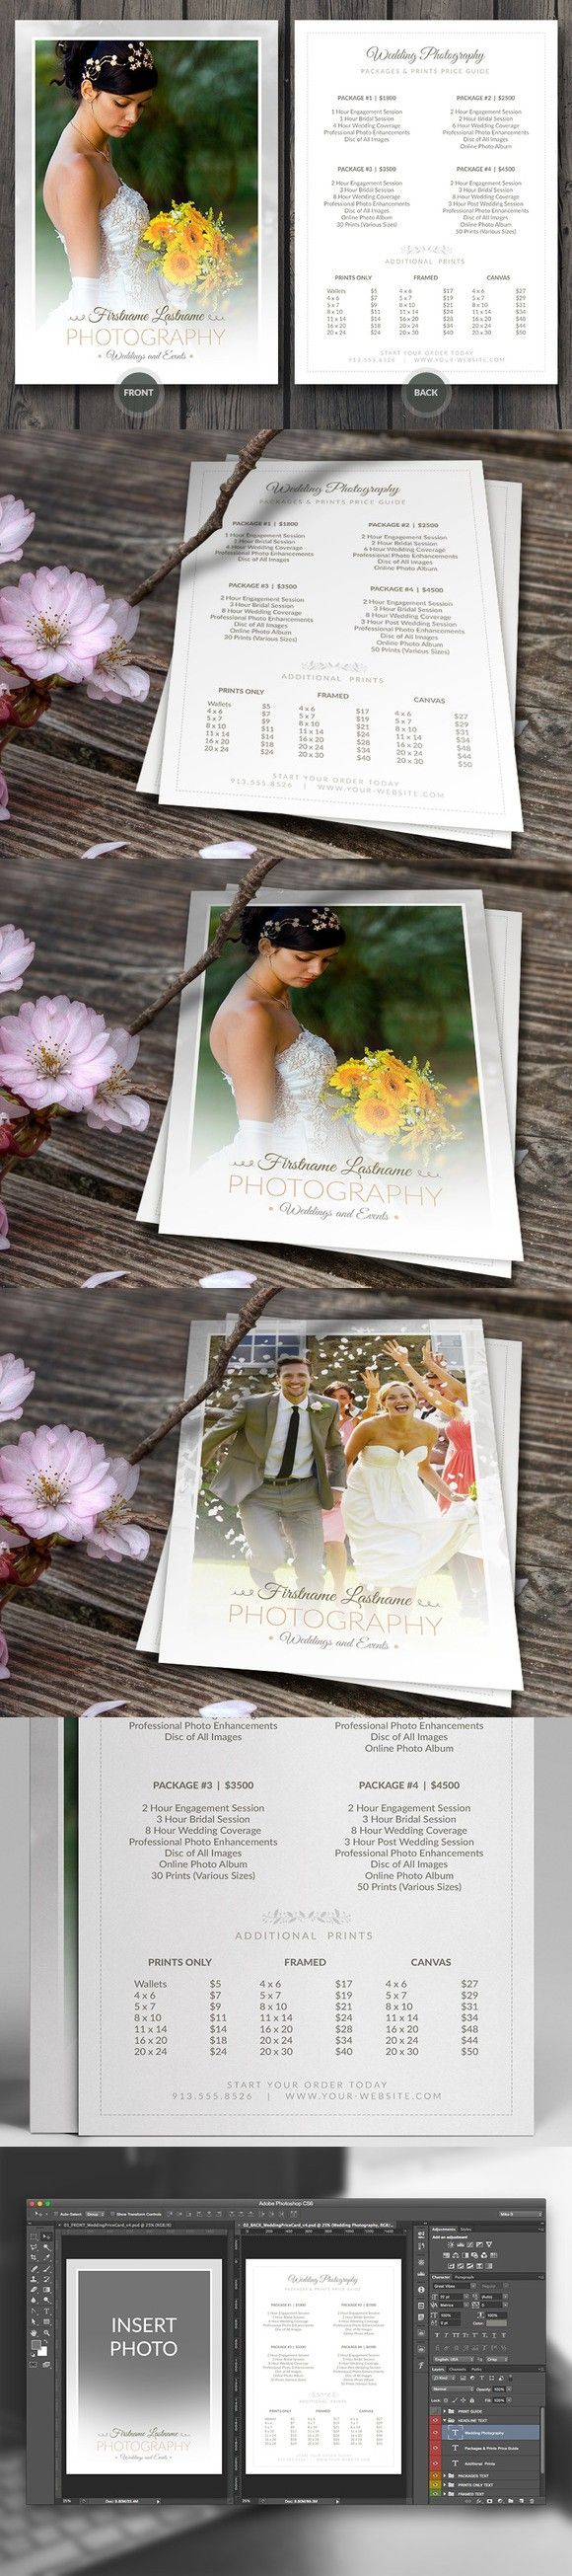 Wedding Photographer Pricing Guide. Stationery Templates